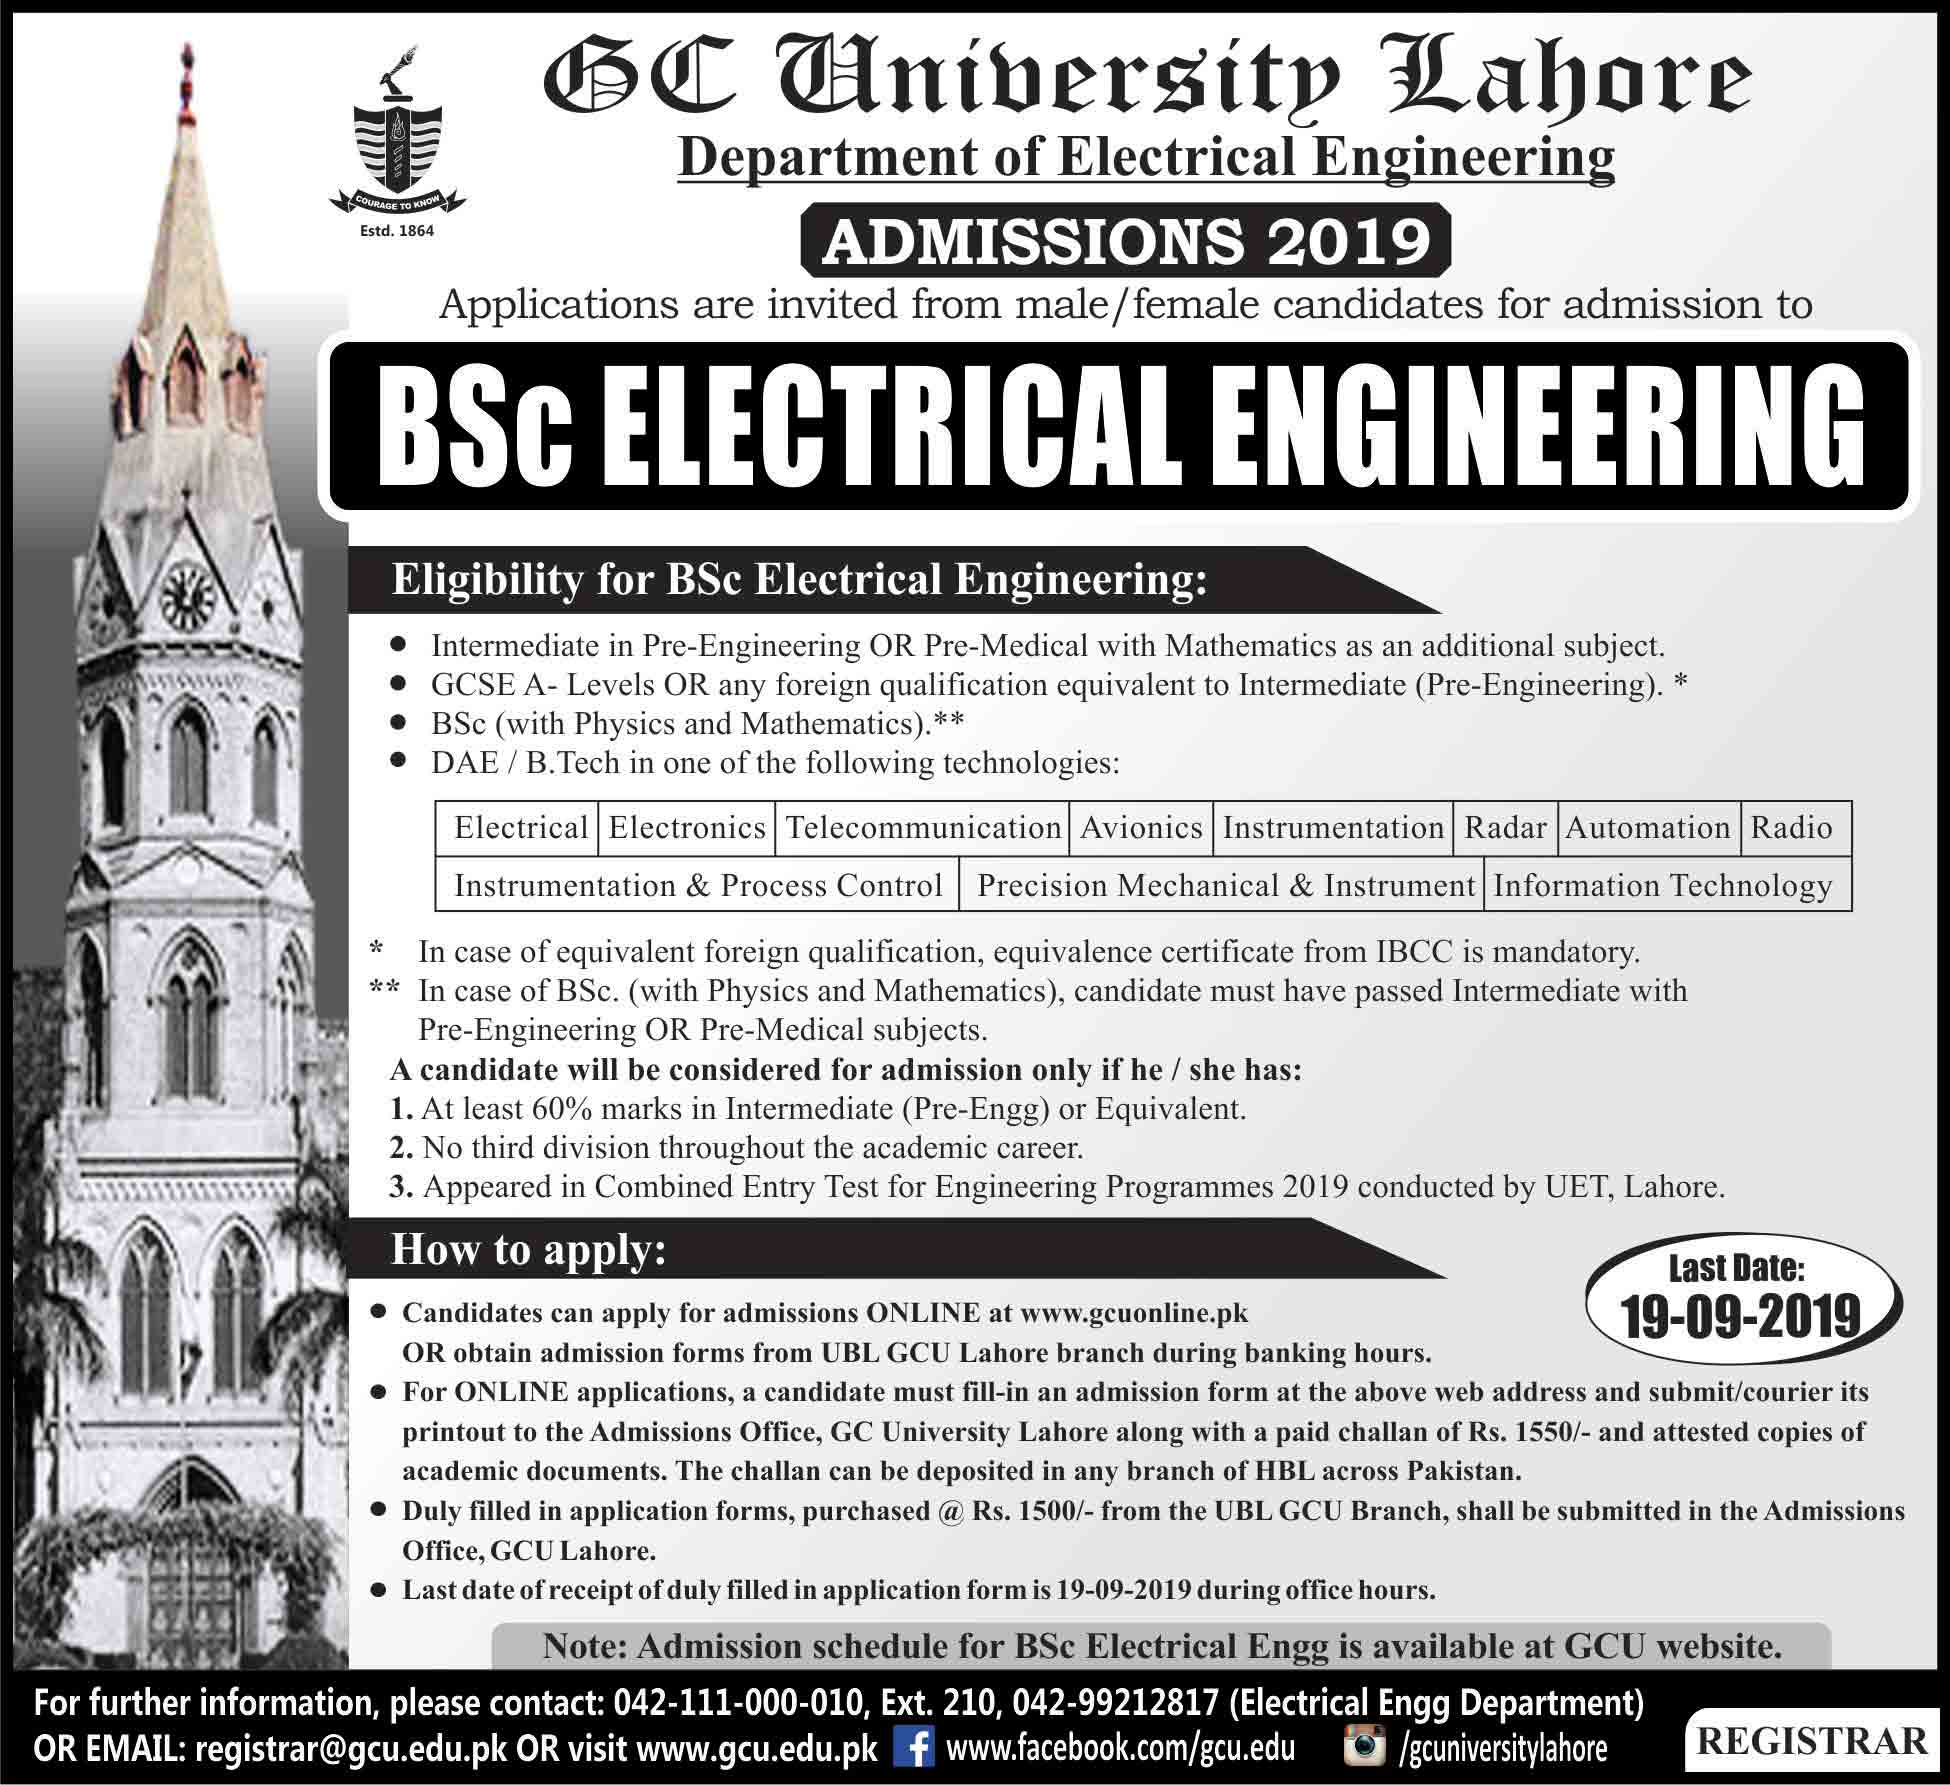 GCU Lahore BSC Electrical Engineering Admission 2019 Merit List